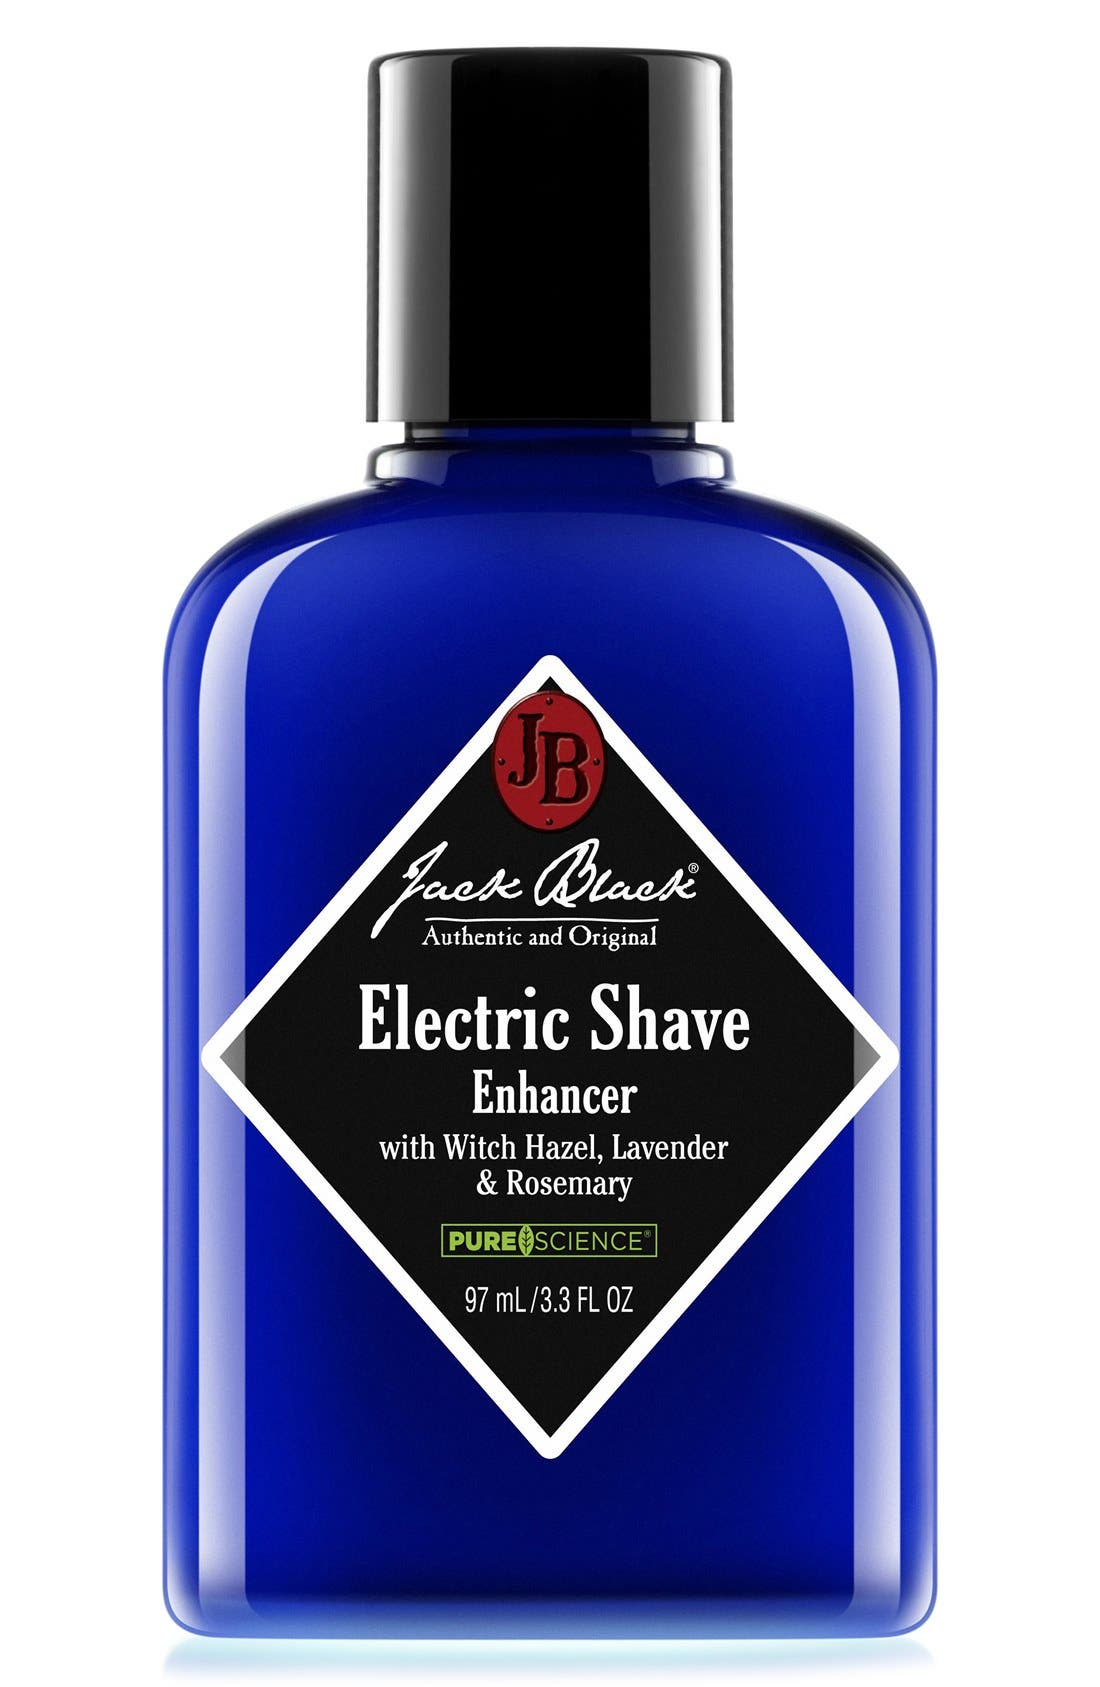 Electric Shave Enhancer with Witch Hazel, Lavender & Rosemary,                         Main,                         color,